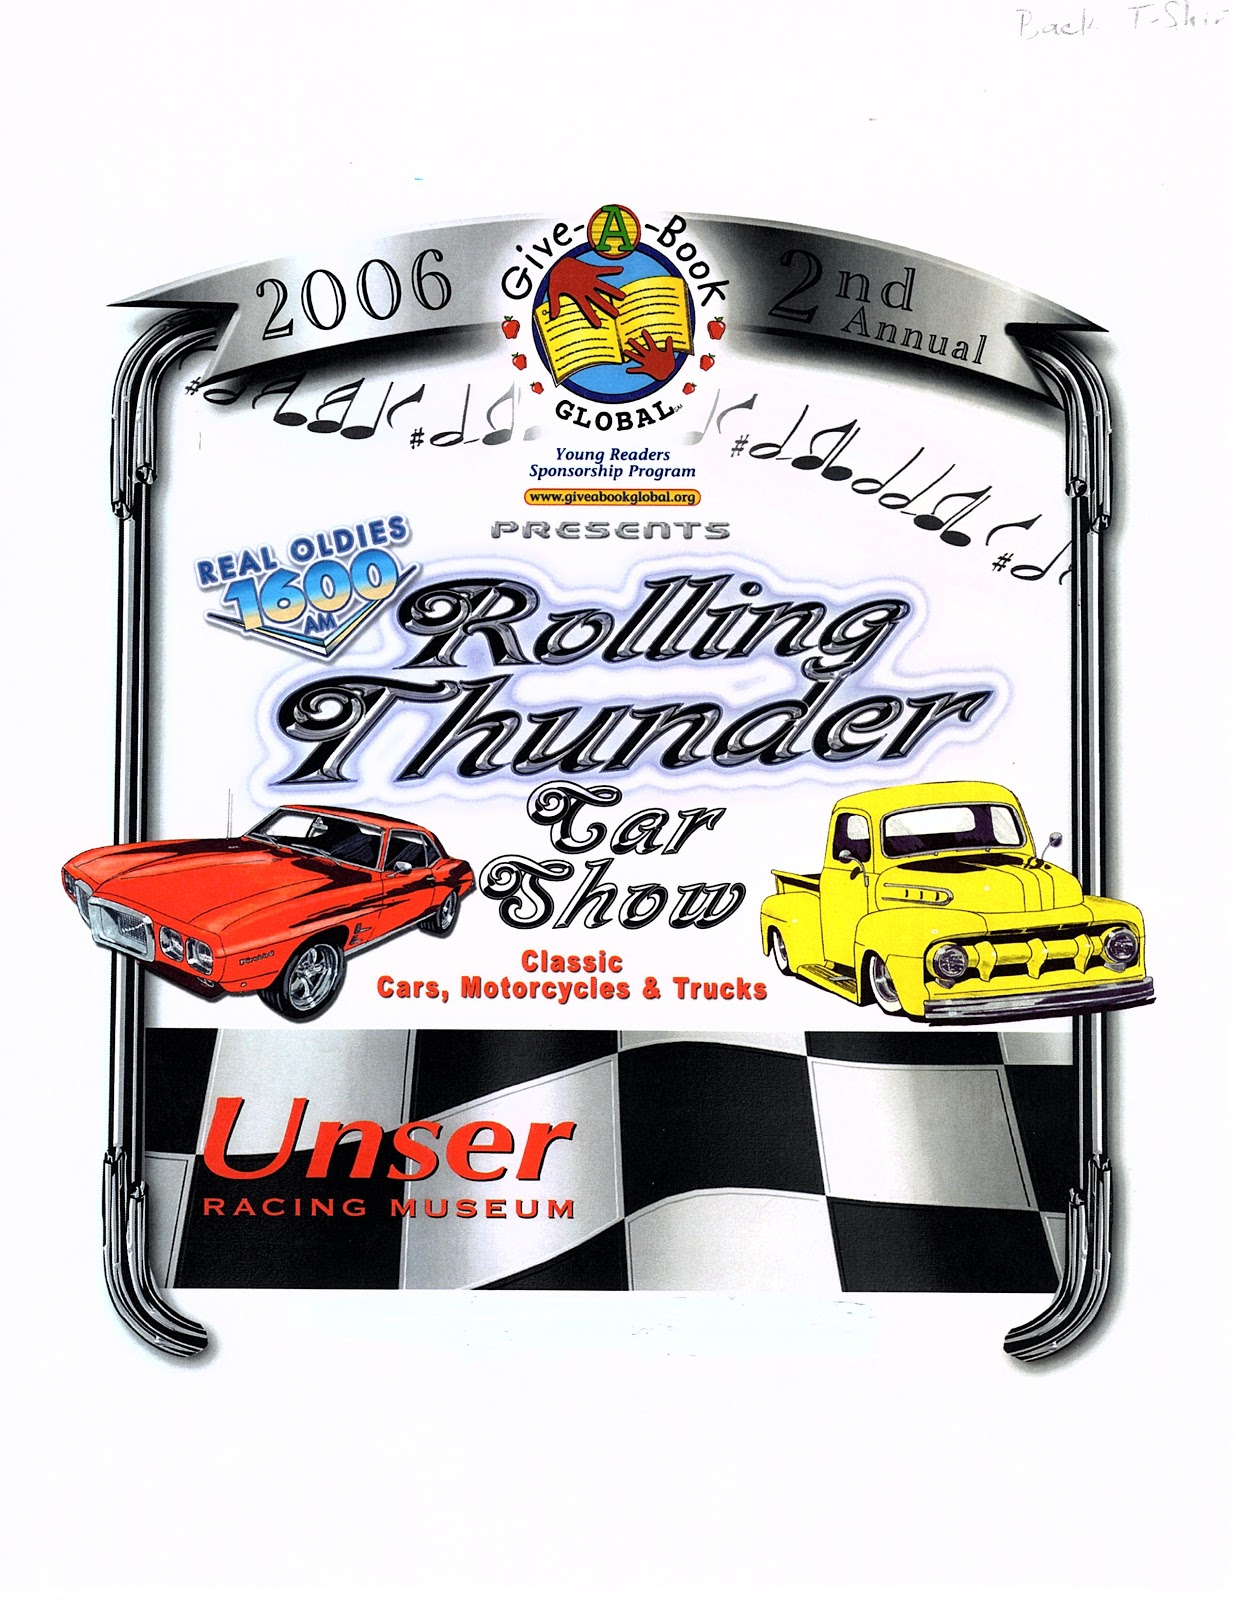 2nd Annual Rolling Thunder at the Unser Racing Museum